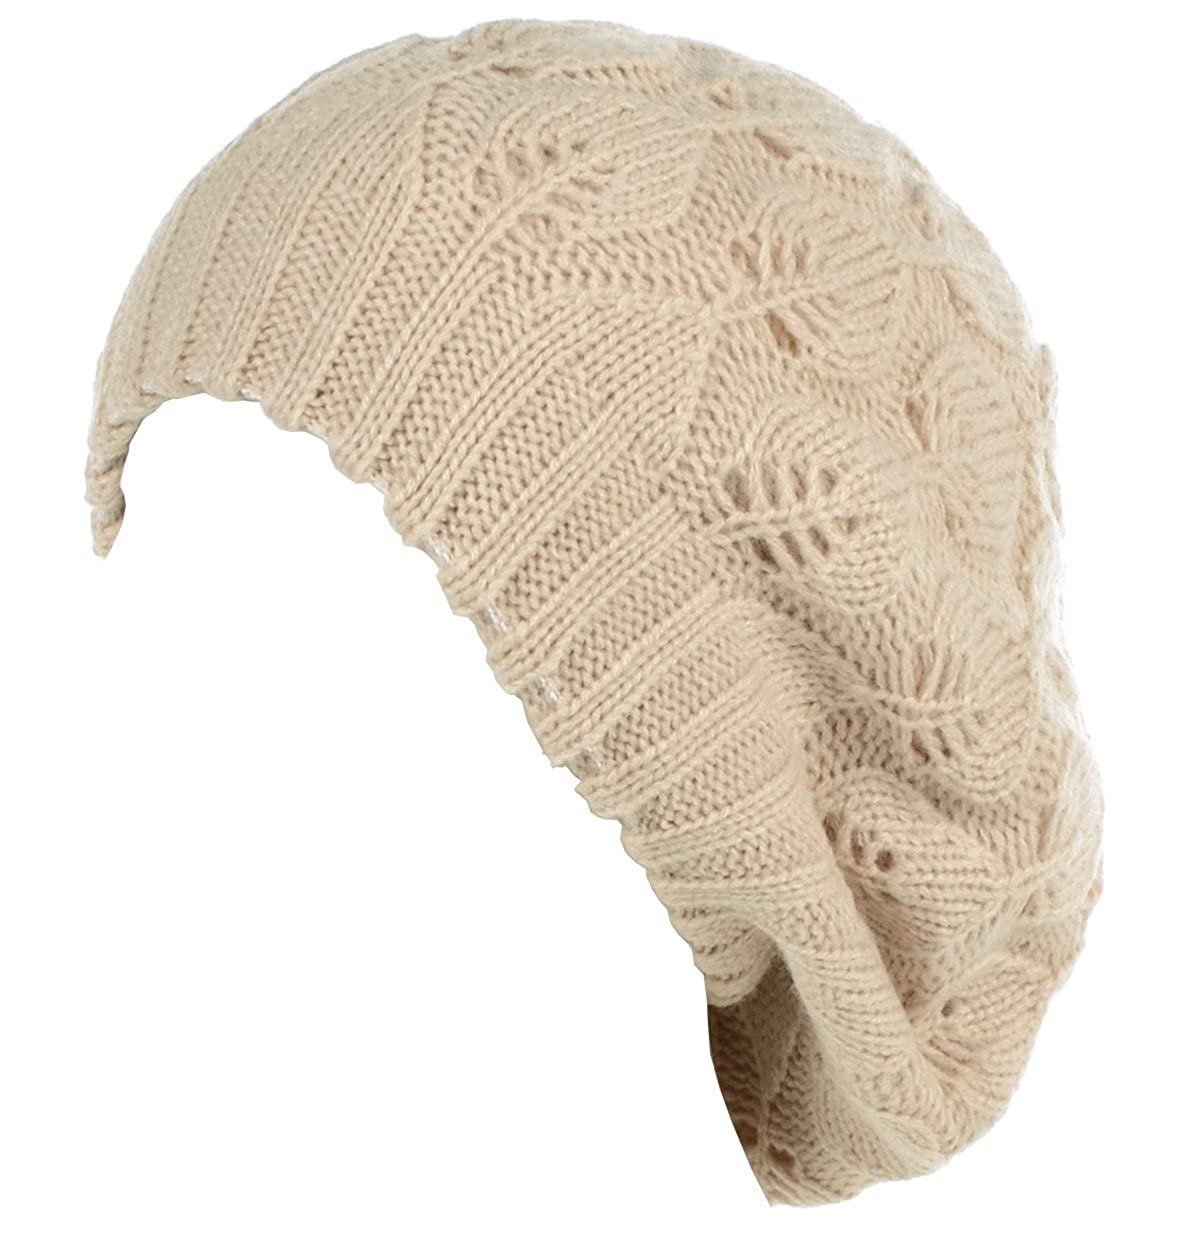 BYOS Winter Chic Warm Double Layer Leafy Cutout Crochet Knit Slouchy Beret  Beanie Hat (Beige Leafy) at Amazon Women s Clothing store  4eca7448624